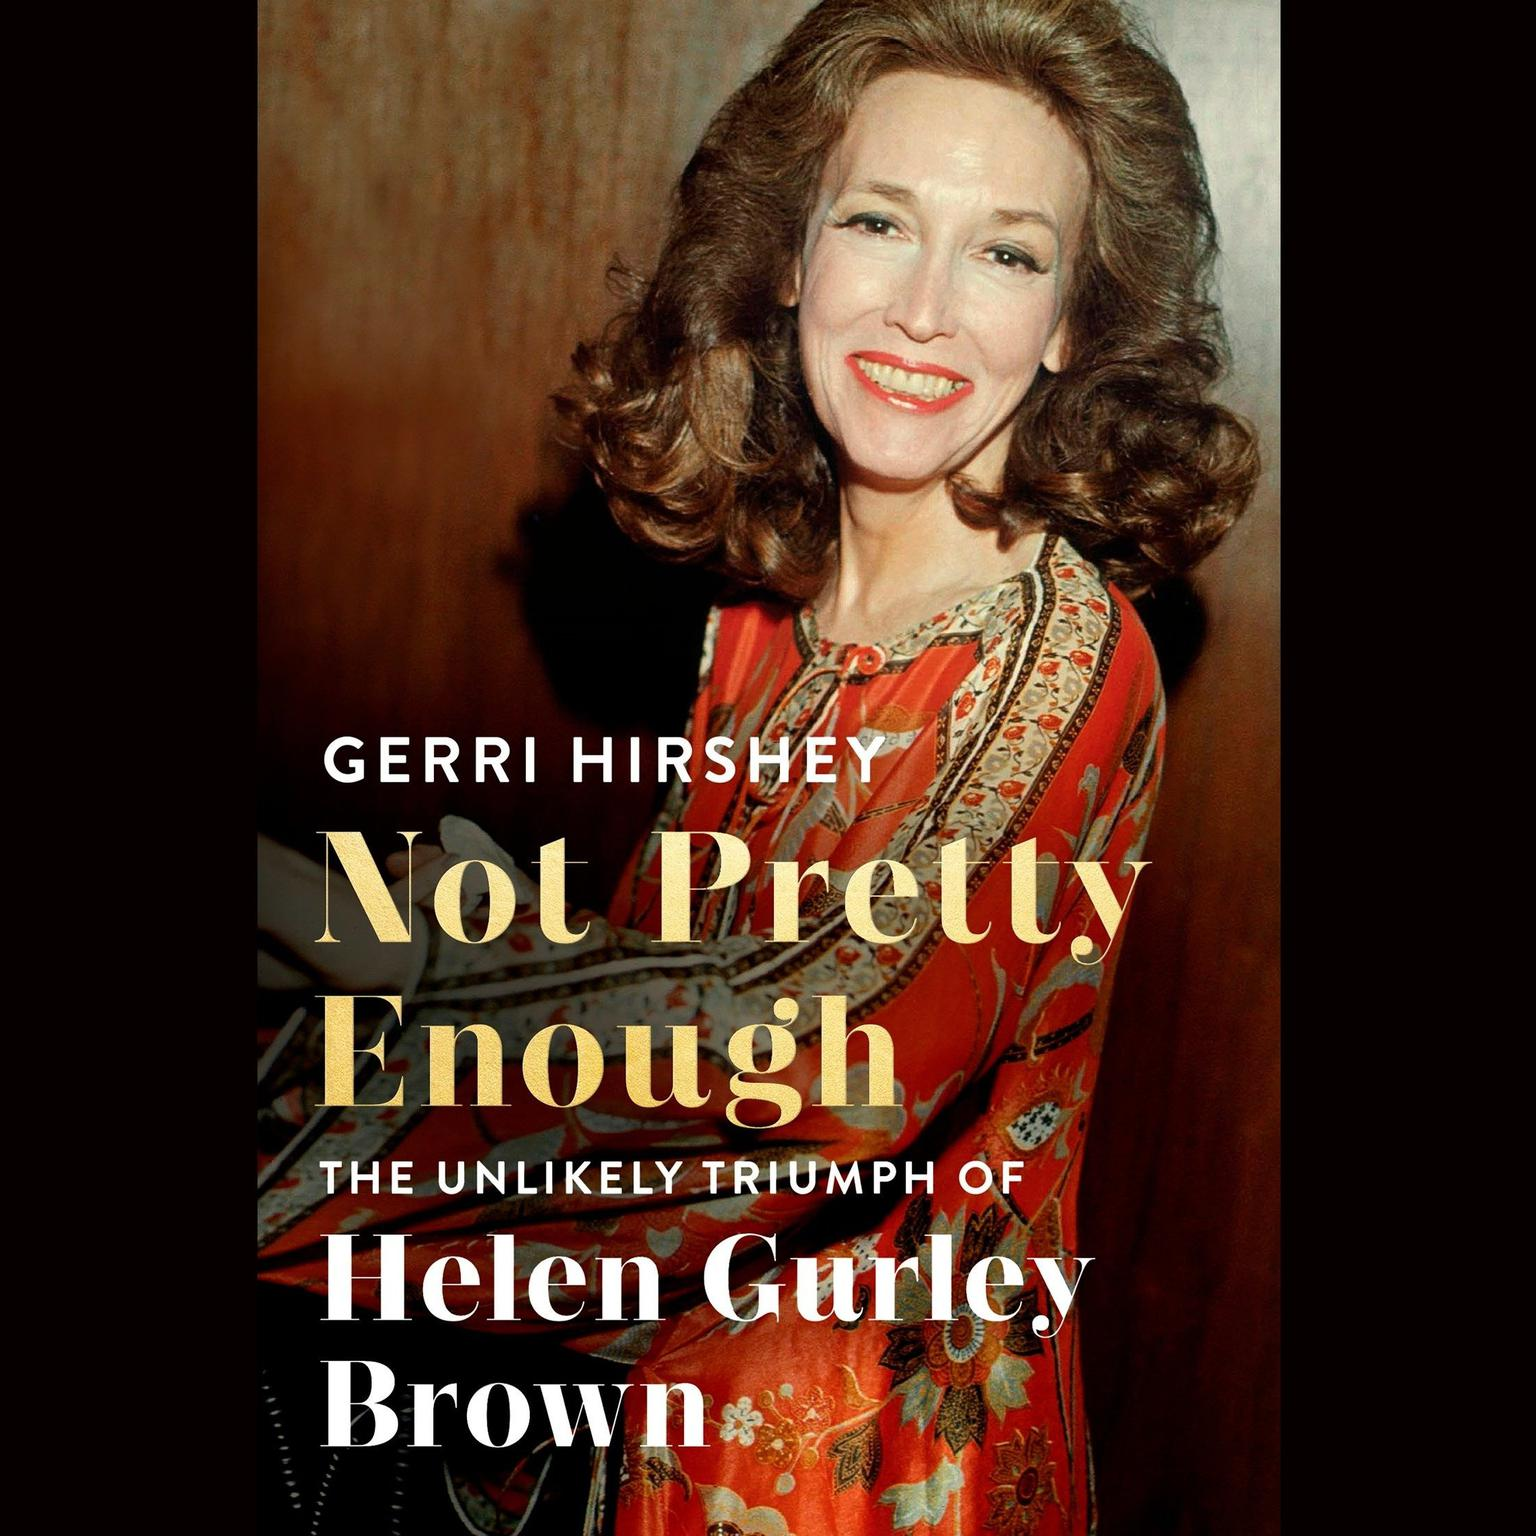 Printable Not Pretty Enough: The Unlikely Triumph of Helen Gurley Brown Audiobook Cover Art